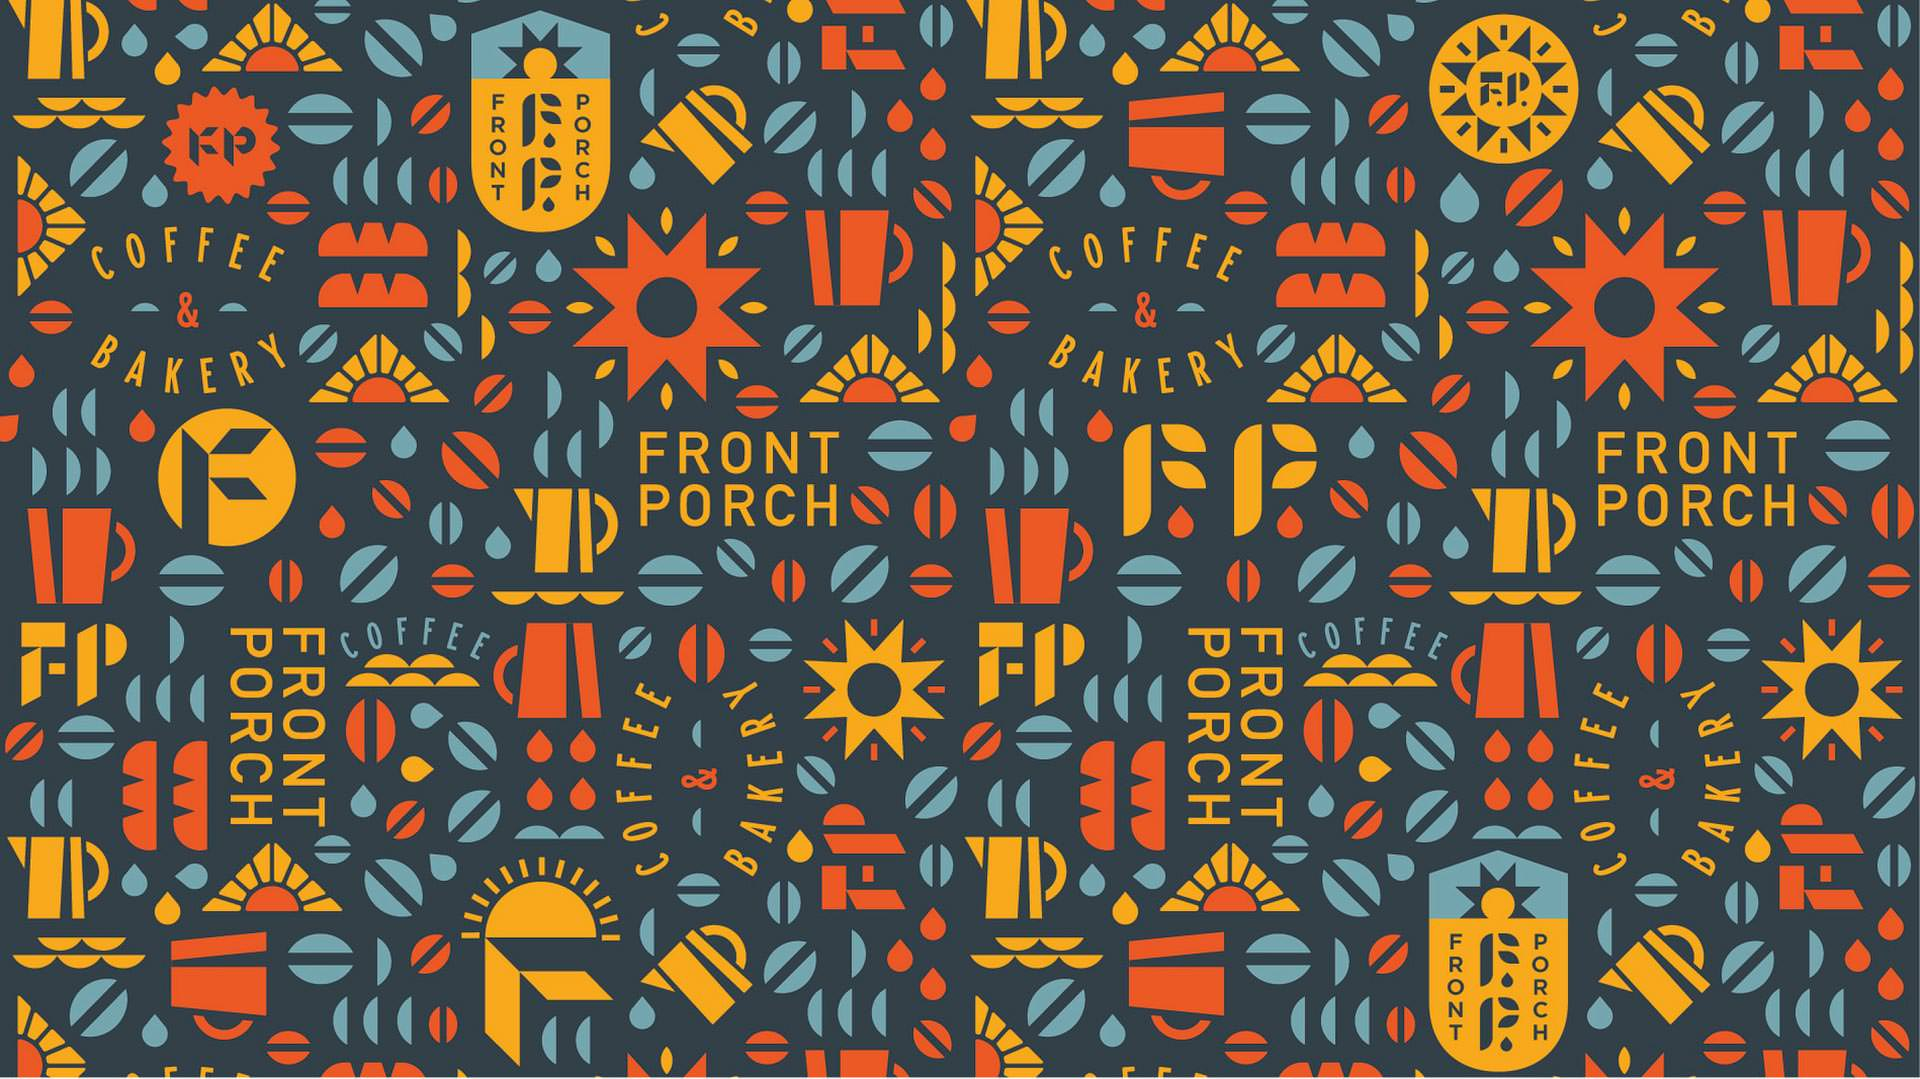 Front Porch Coffee Abilene Texas branding photography website design